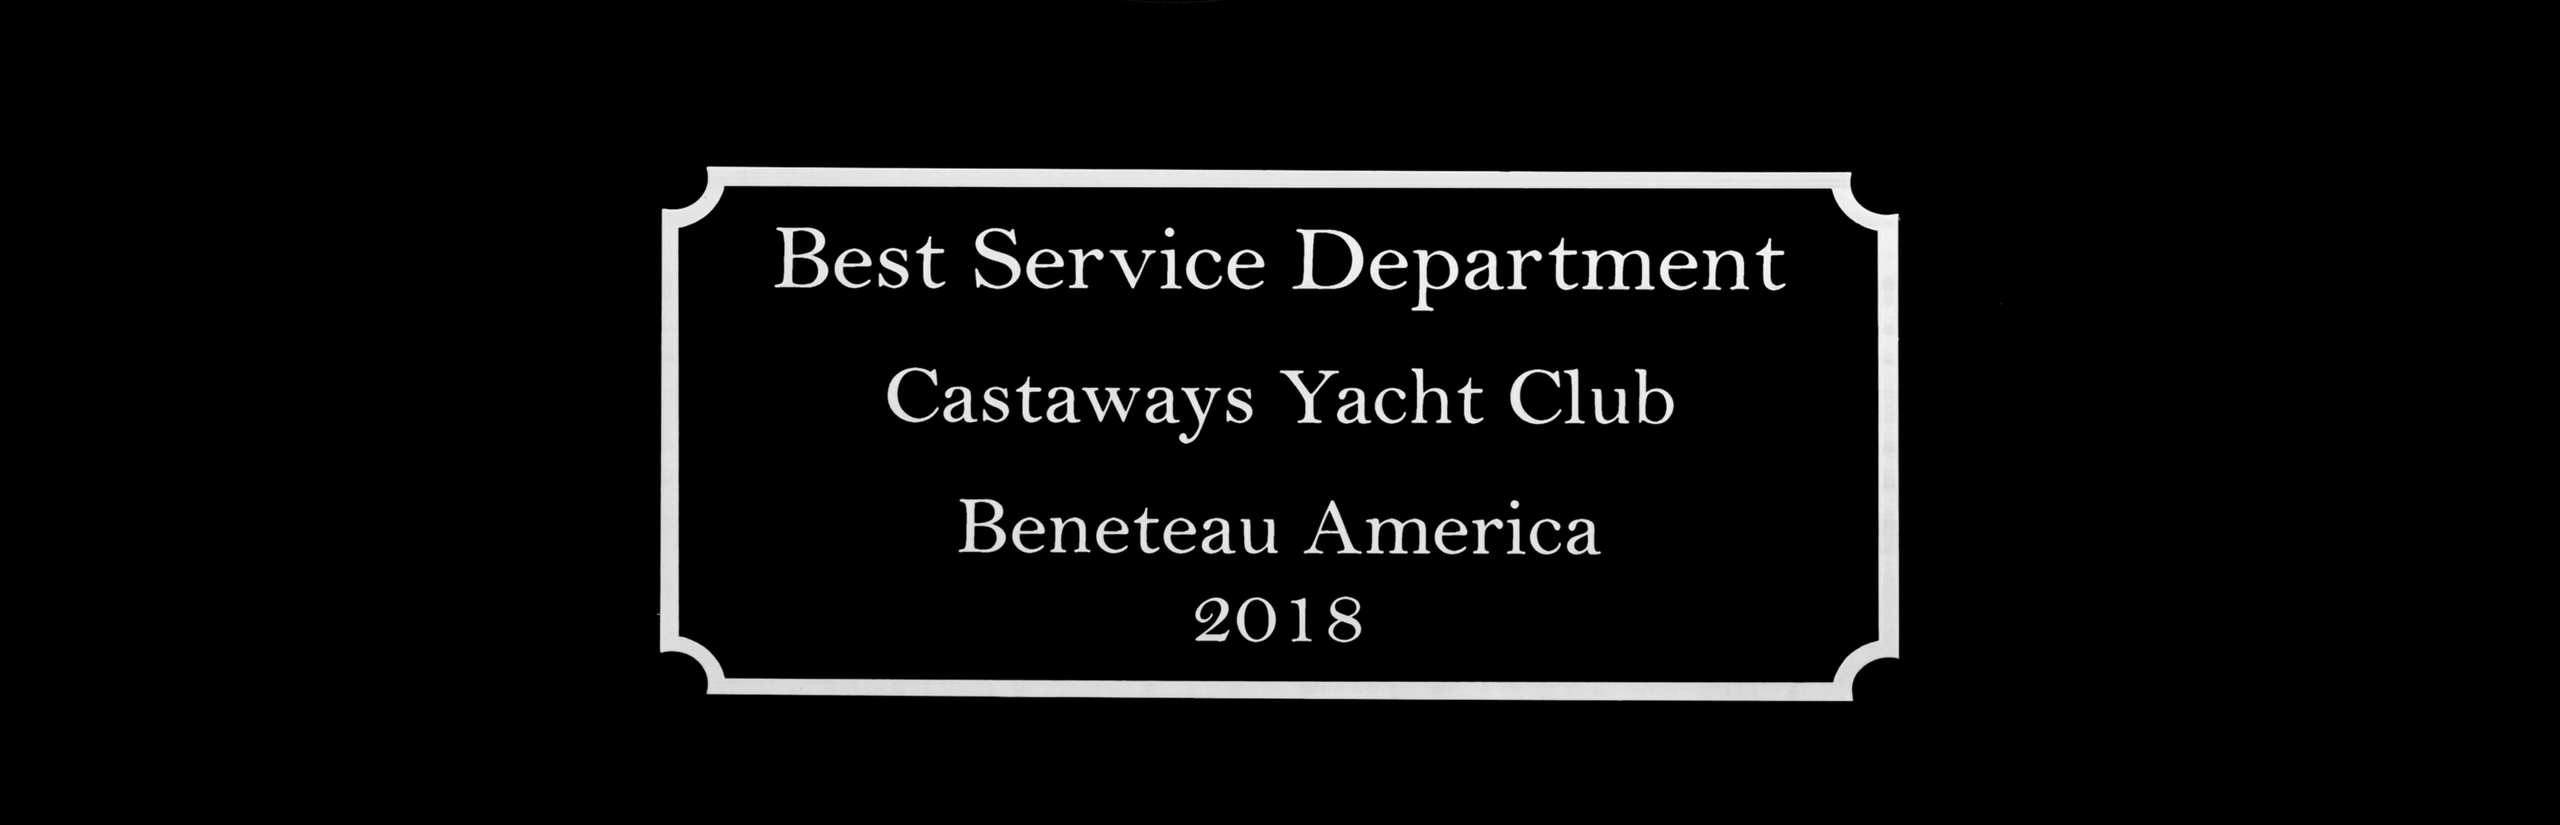 2018 Beneteau Best Service Department Award